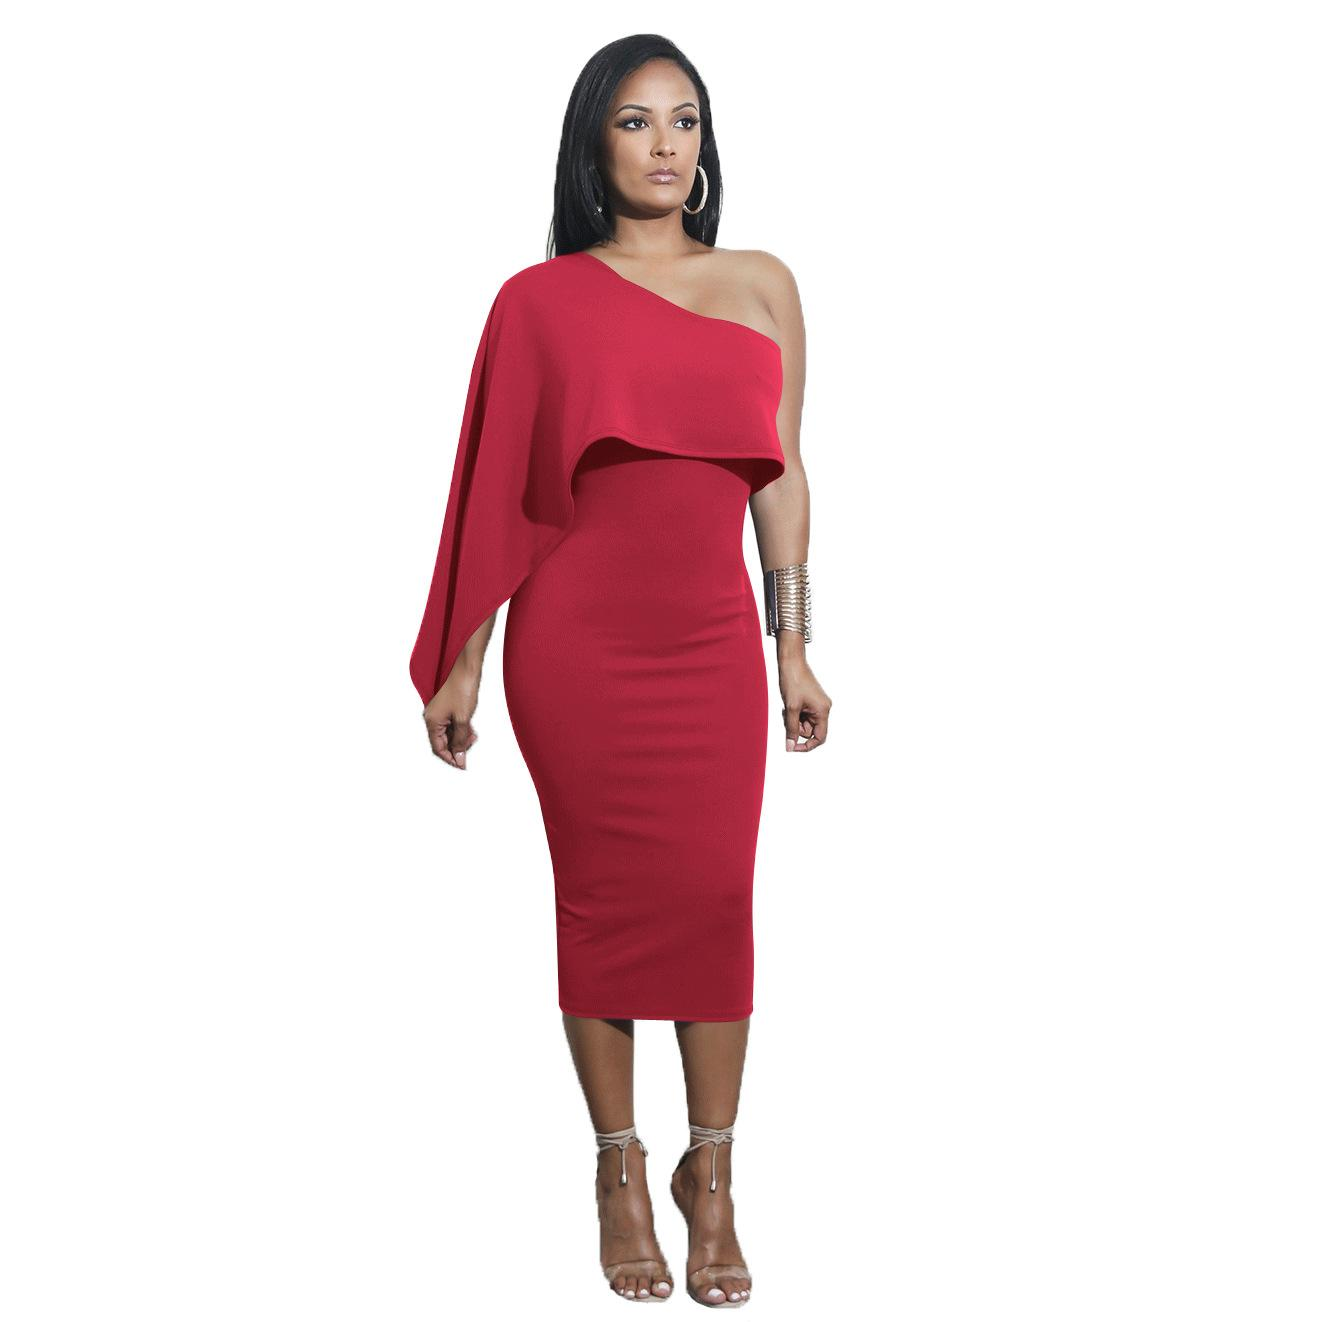 7cecf00ed4 2019 New Hot Lace Up Party Mini Dress Women Red One Shoulder Long Sleeve  Elegant Bodycon Dresses Sexy Club Wear Winter Bandage Dress Vestidos From  Canna_fz, ...